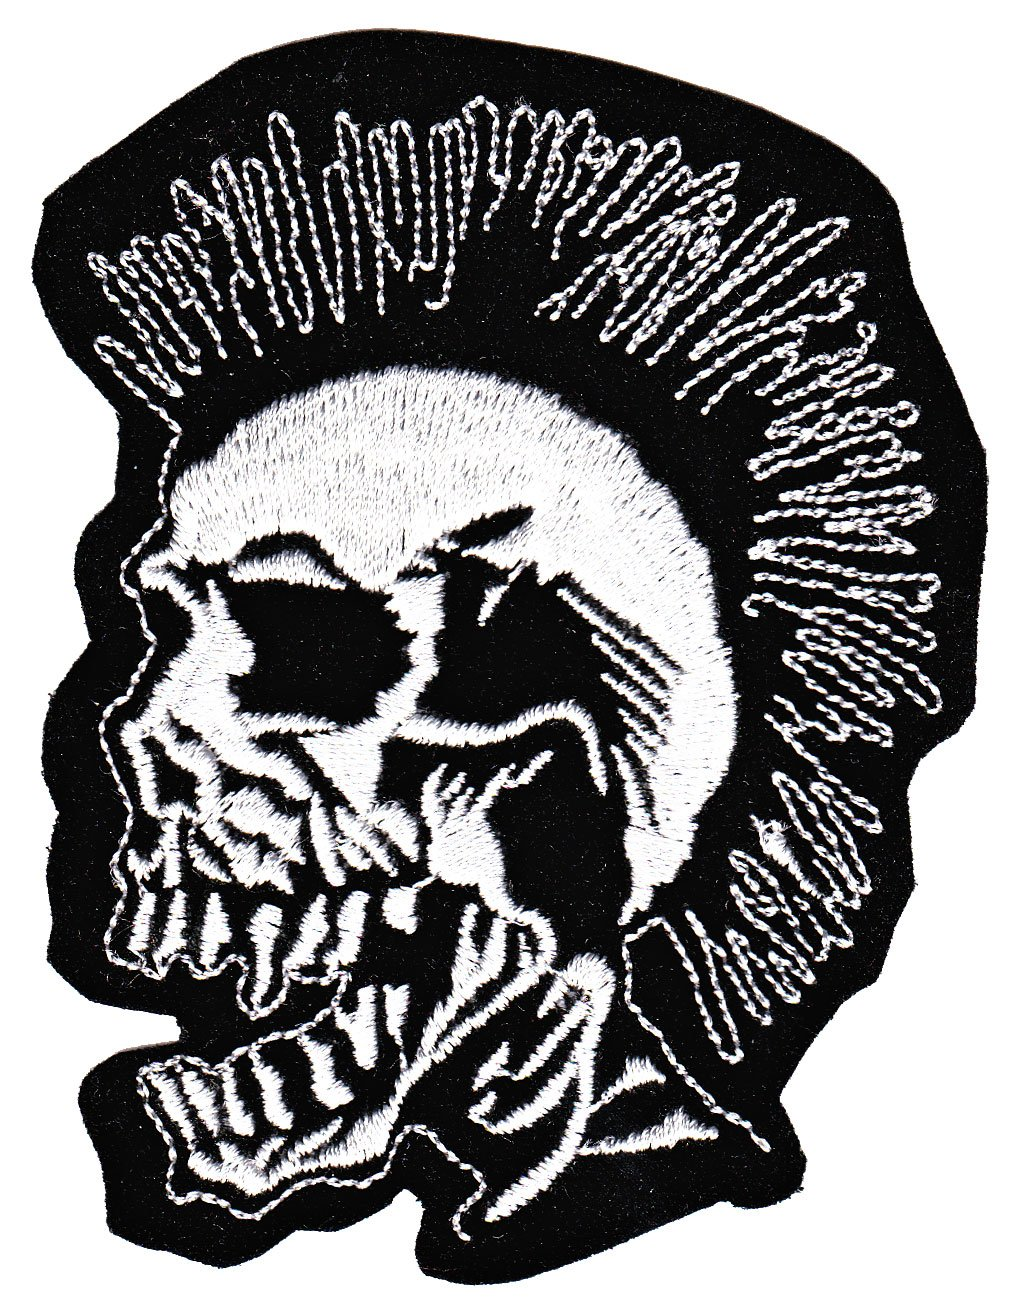 BeeSpring Punk Skull Exploited Sew-on Iron-on Patches Embroidered Applique Badge